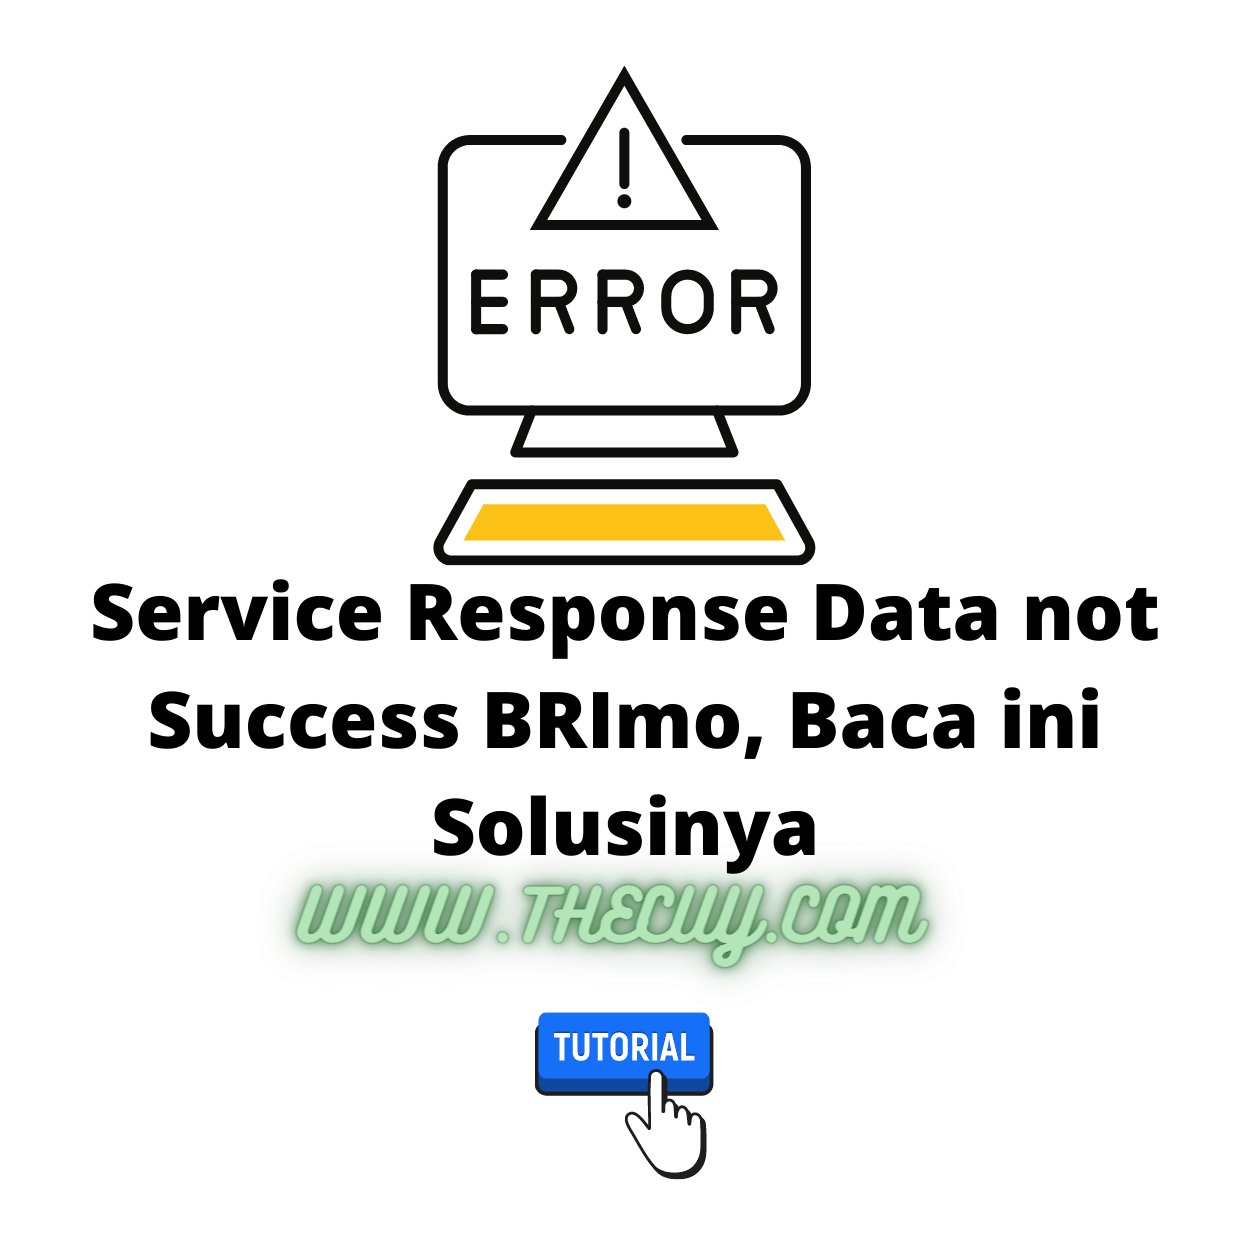 Service Response Data not Success BRImo, Baca ini Solusinya